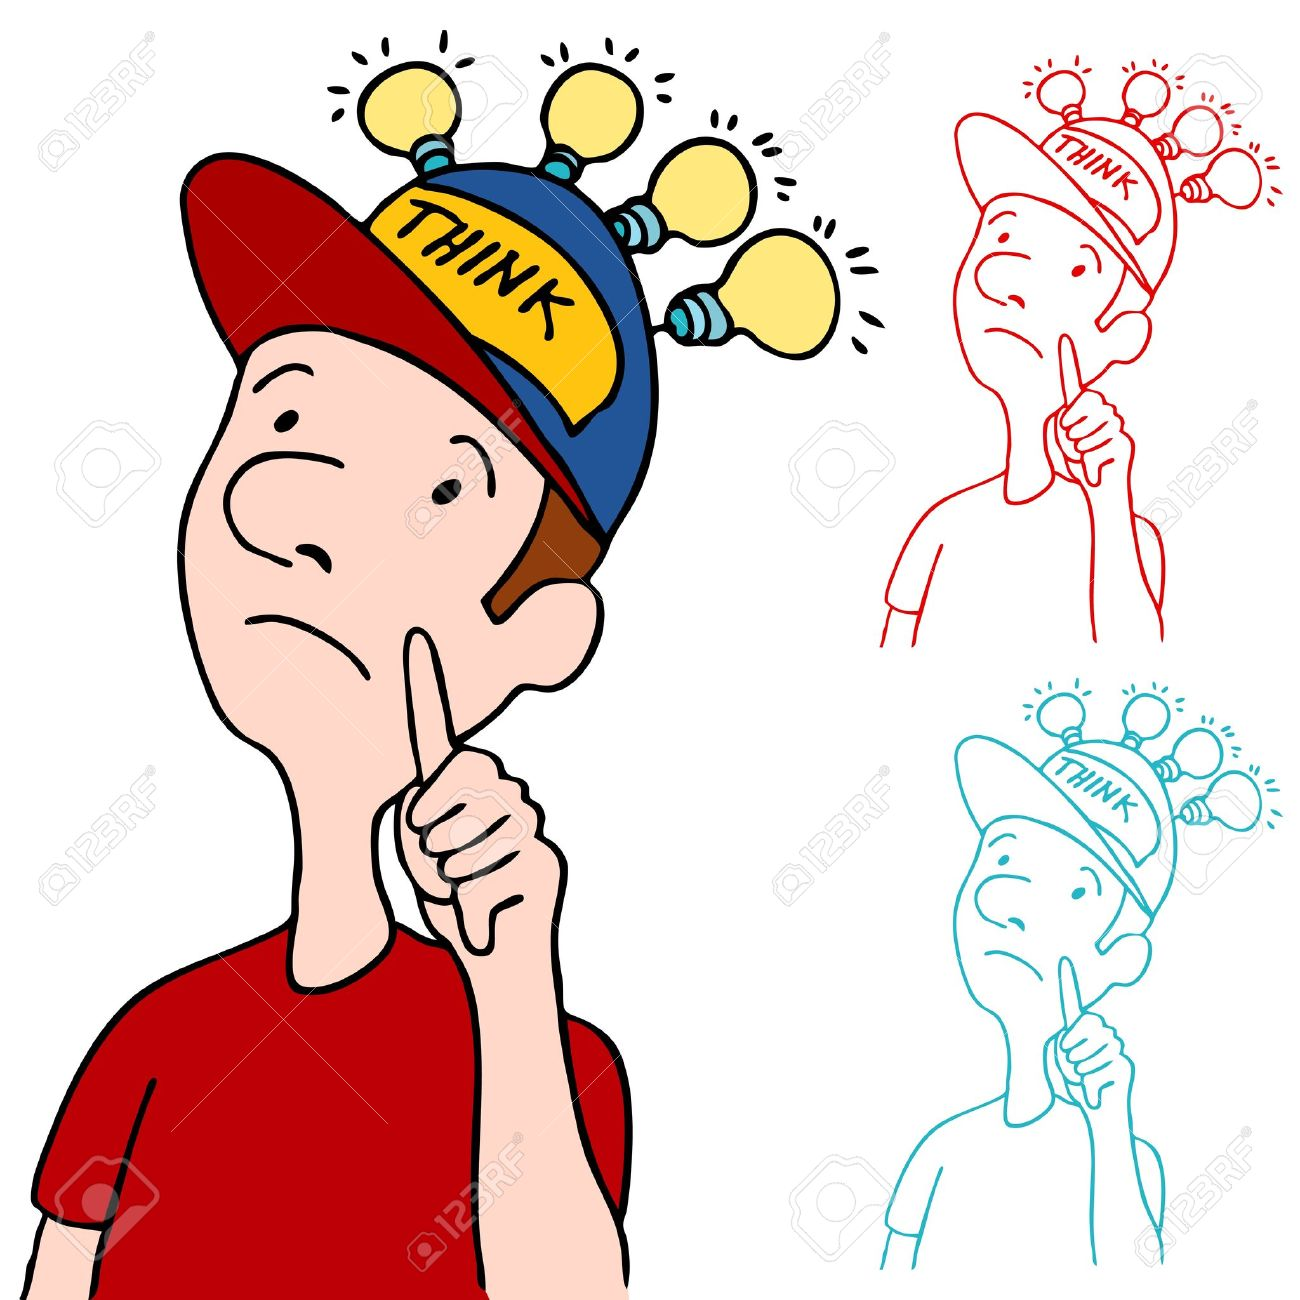 an image of a man wearing his thinking cap royalty free cliparts rh 123rf com